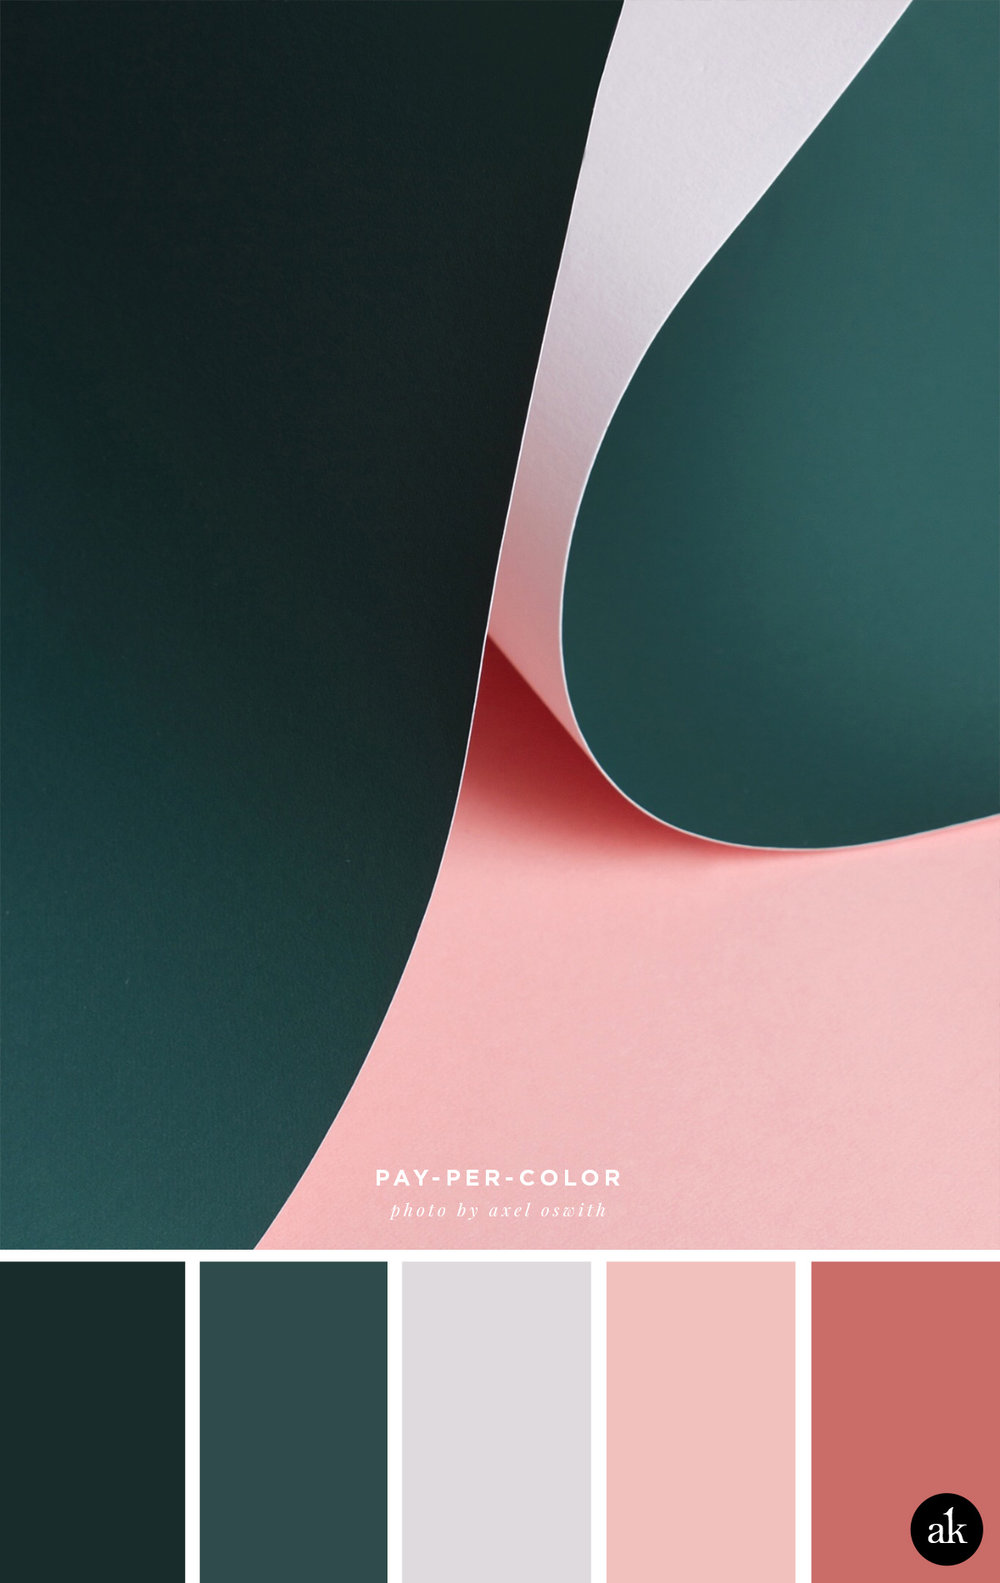 a paper-photograph-inspired color palette // hunter green, gray, dusty pink, antique rose // photo by Axel Oswith